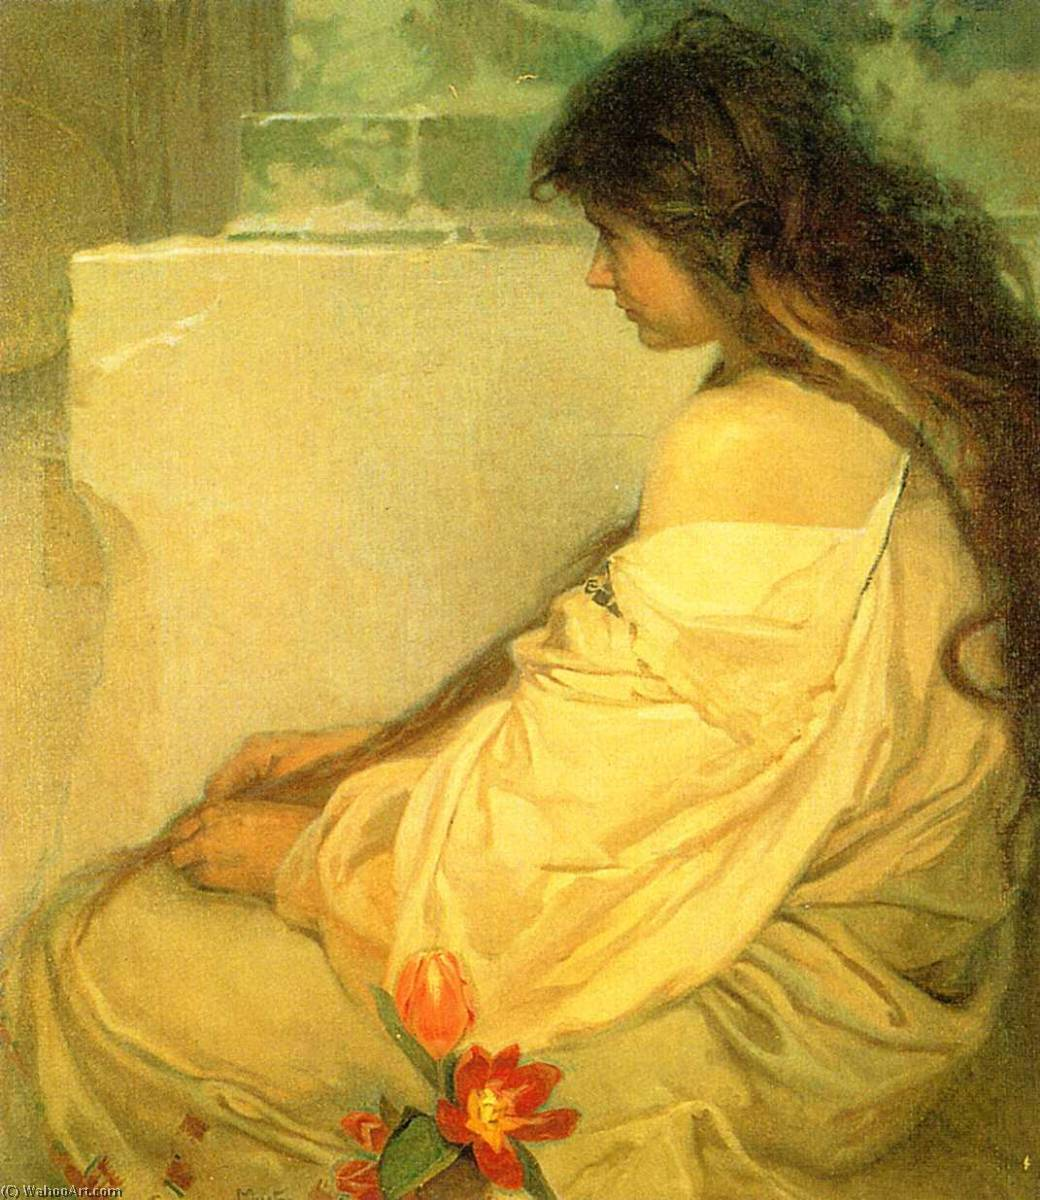 Girl with Loose Hair and Tulips, 1920 by Alfons Maria Mucha (1860-1939, Czech Republic)